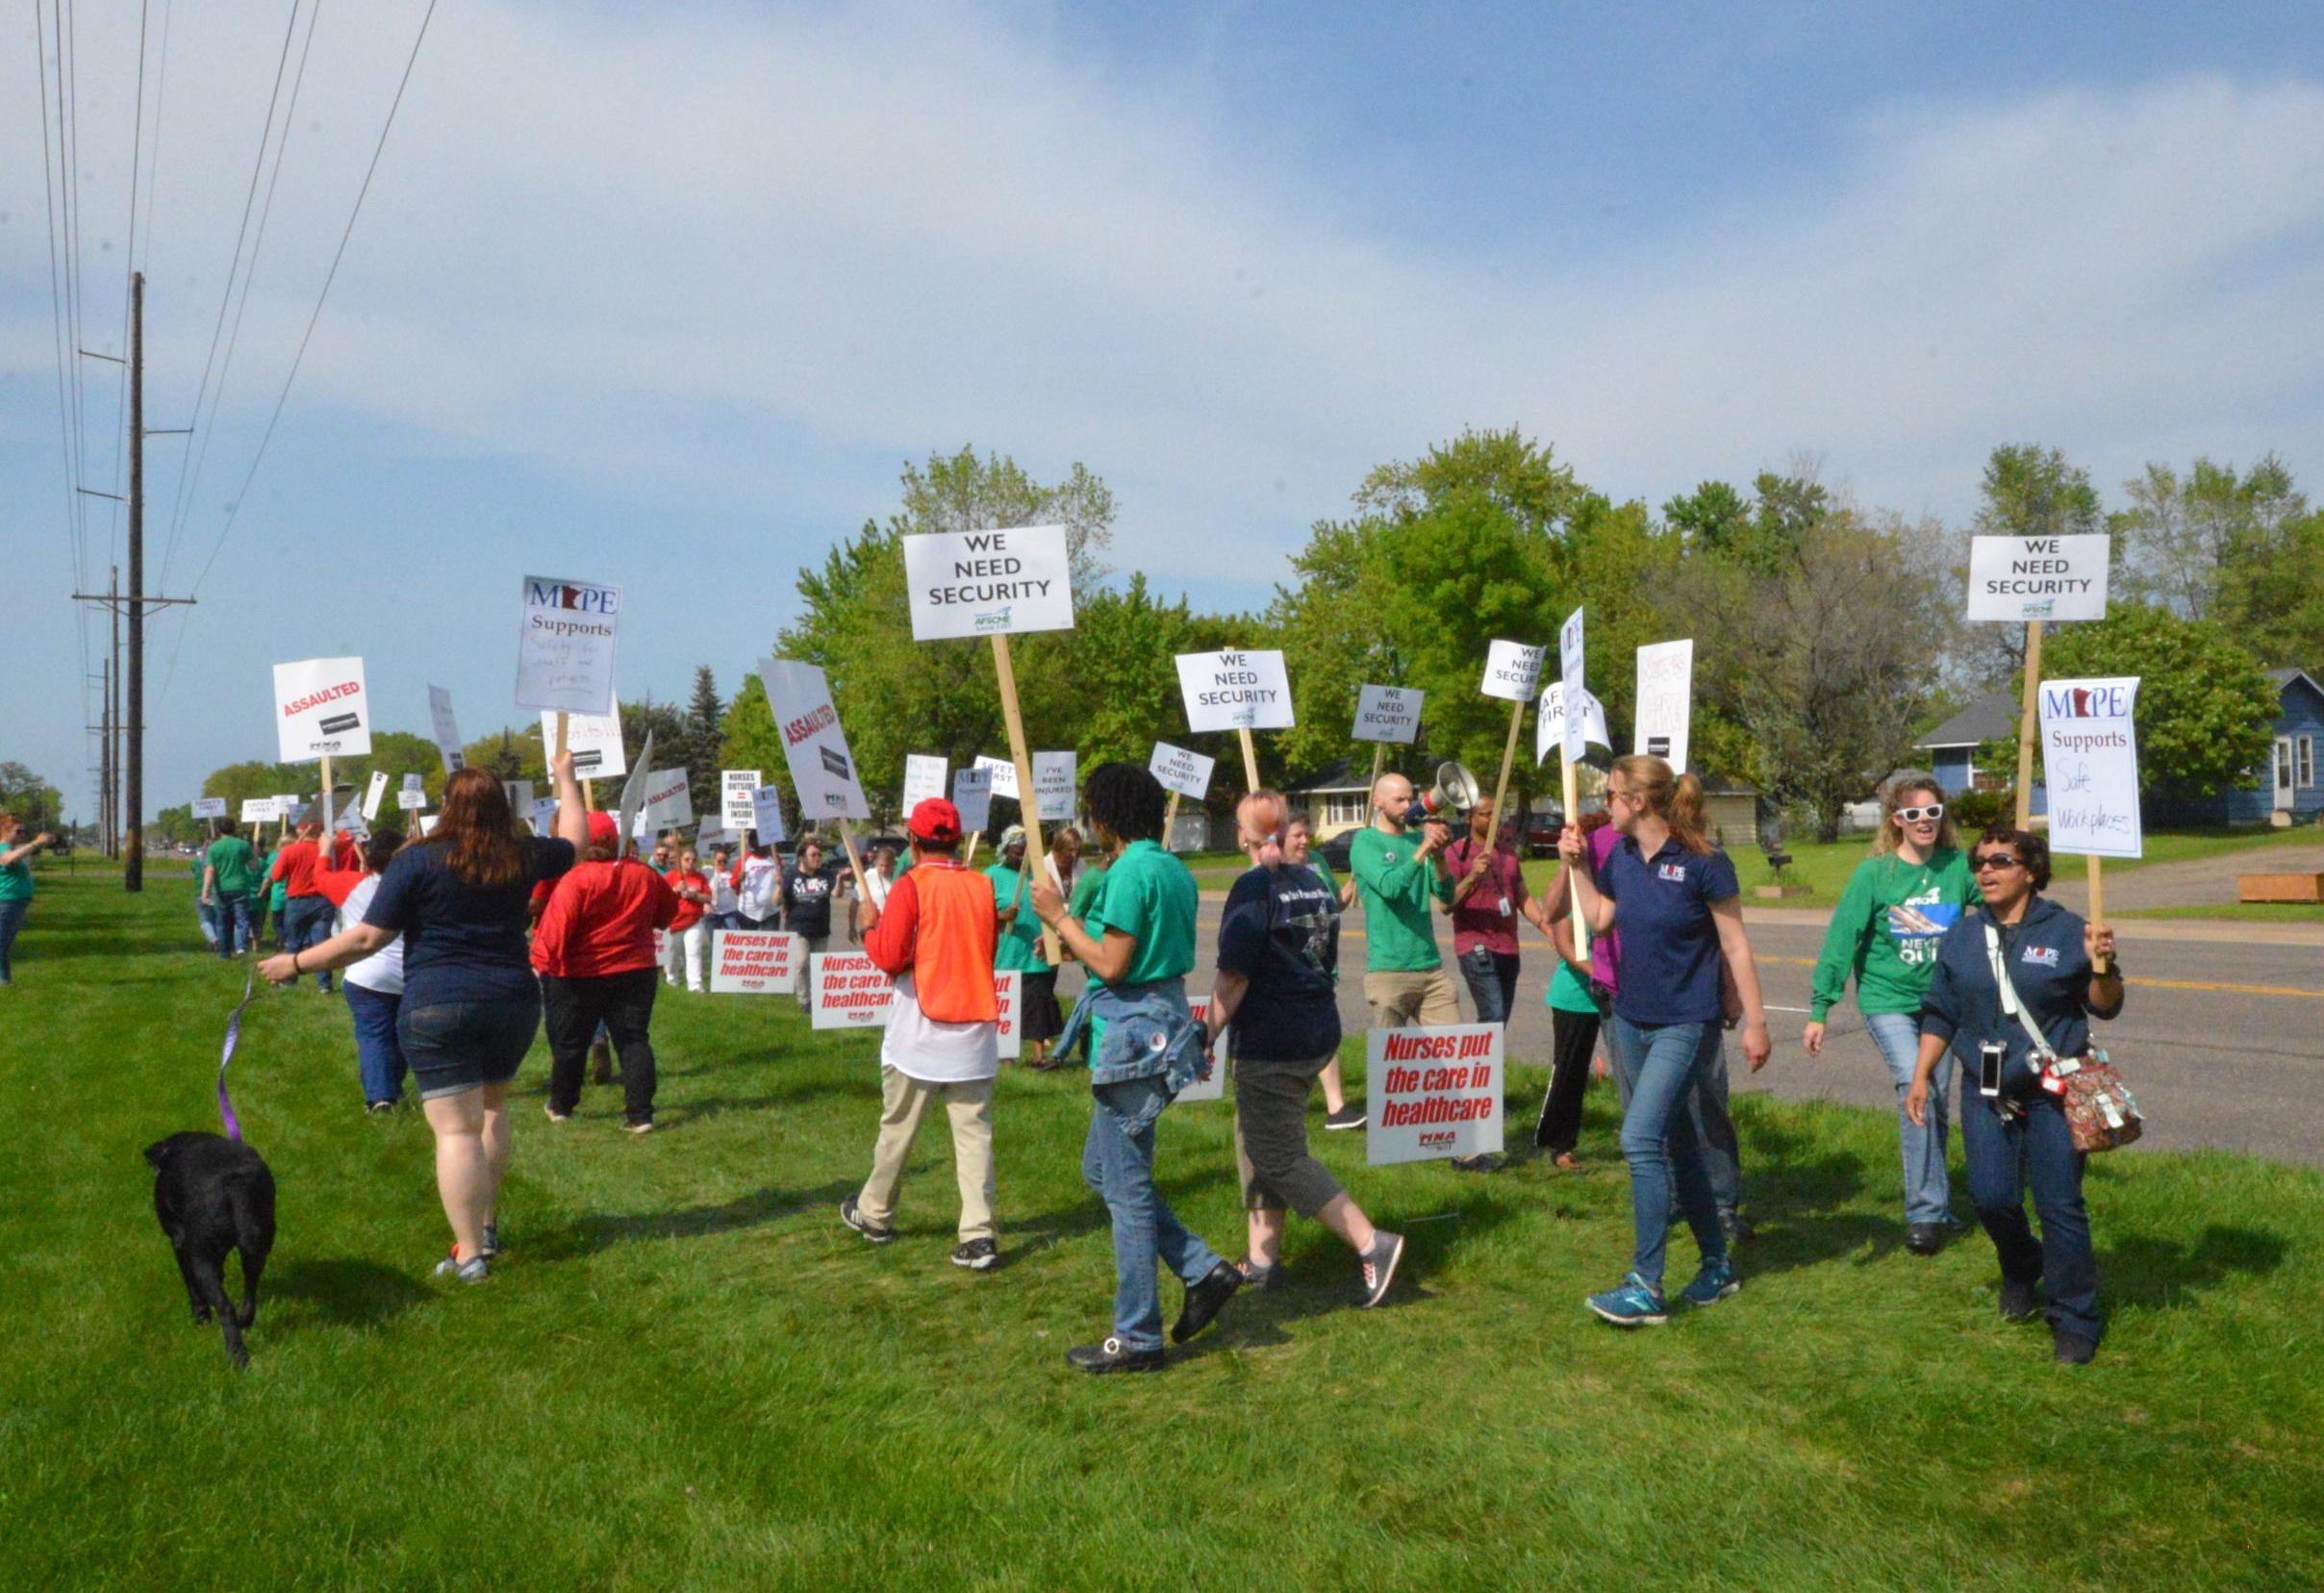 AFSCME members fight back against unsafe working conditions at Anoka Metro Regional Treatment Center